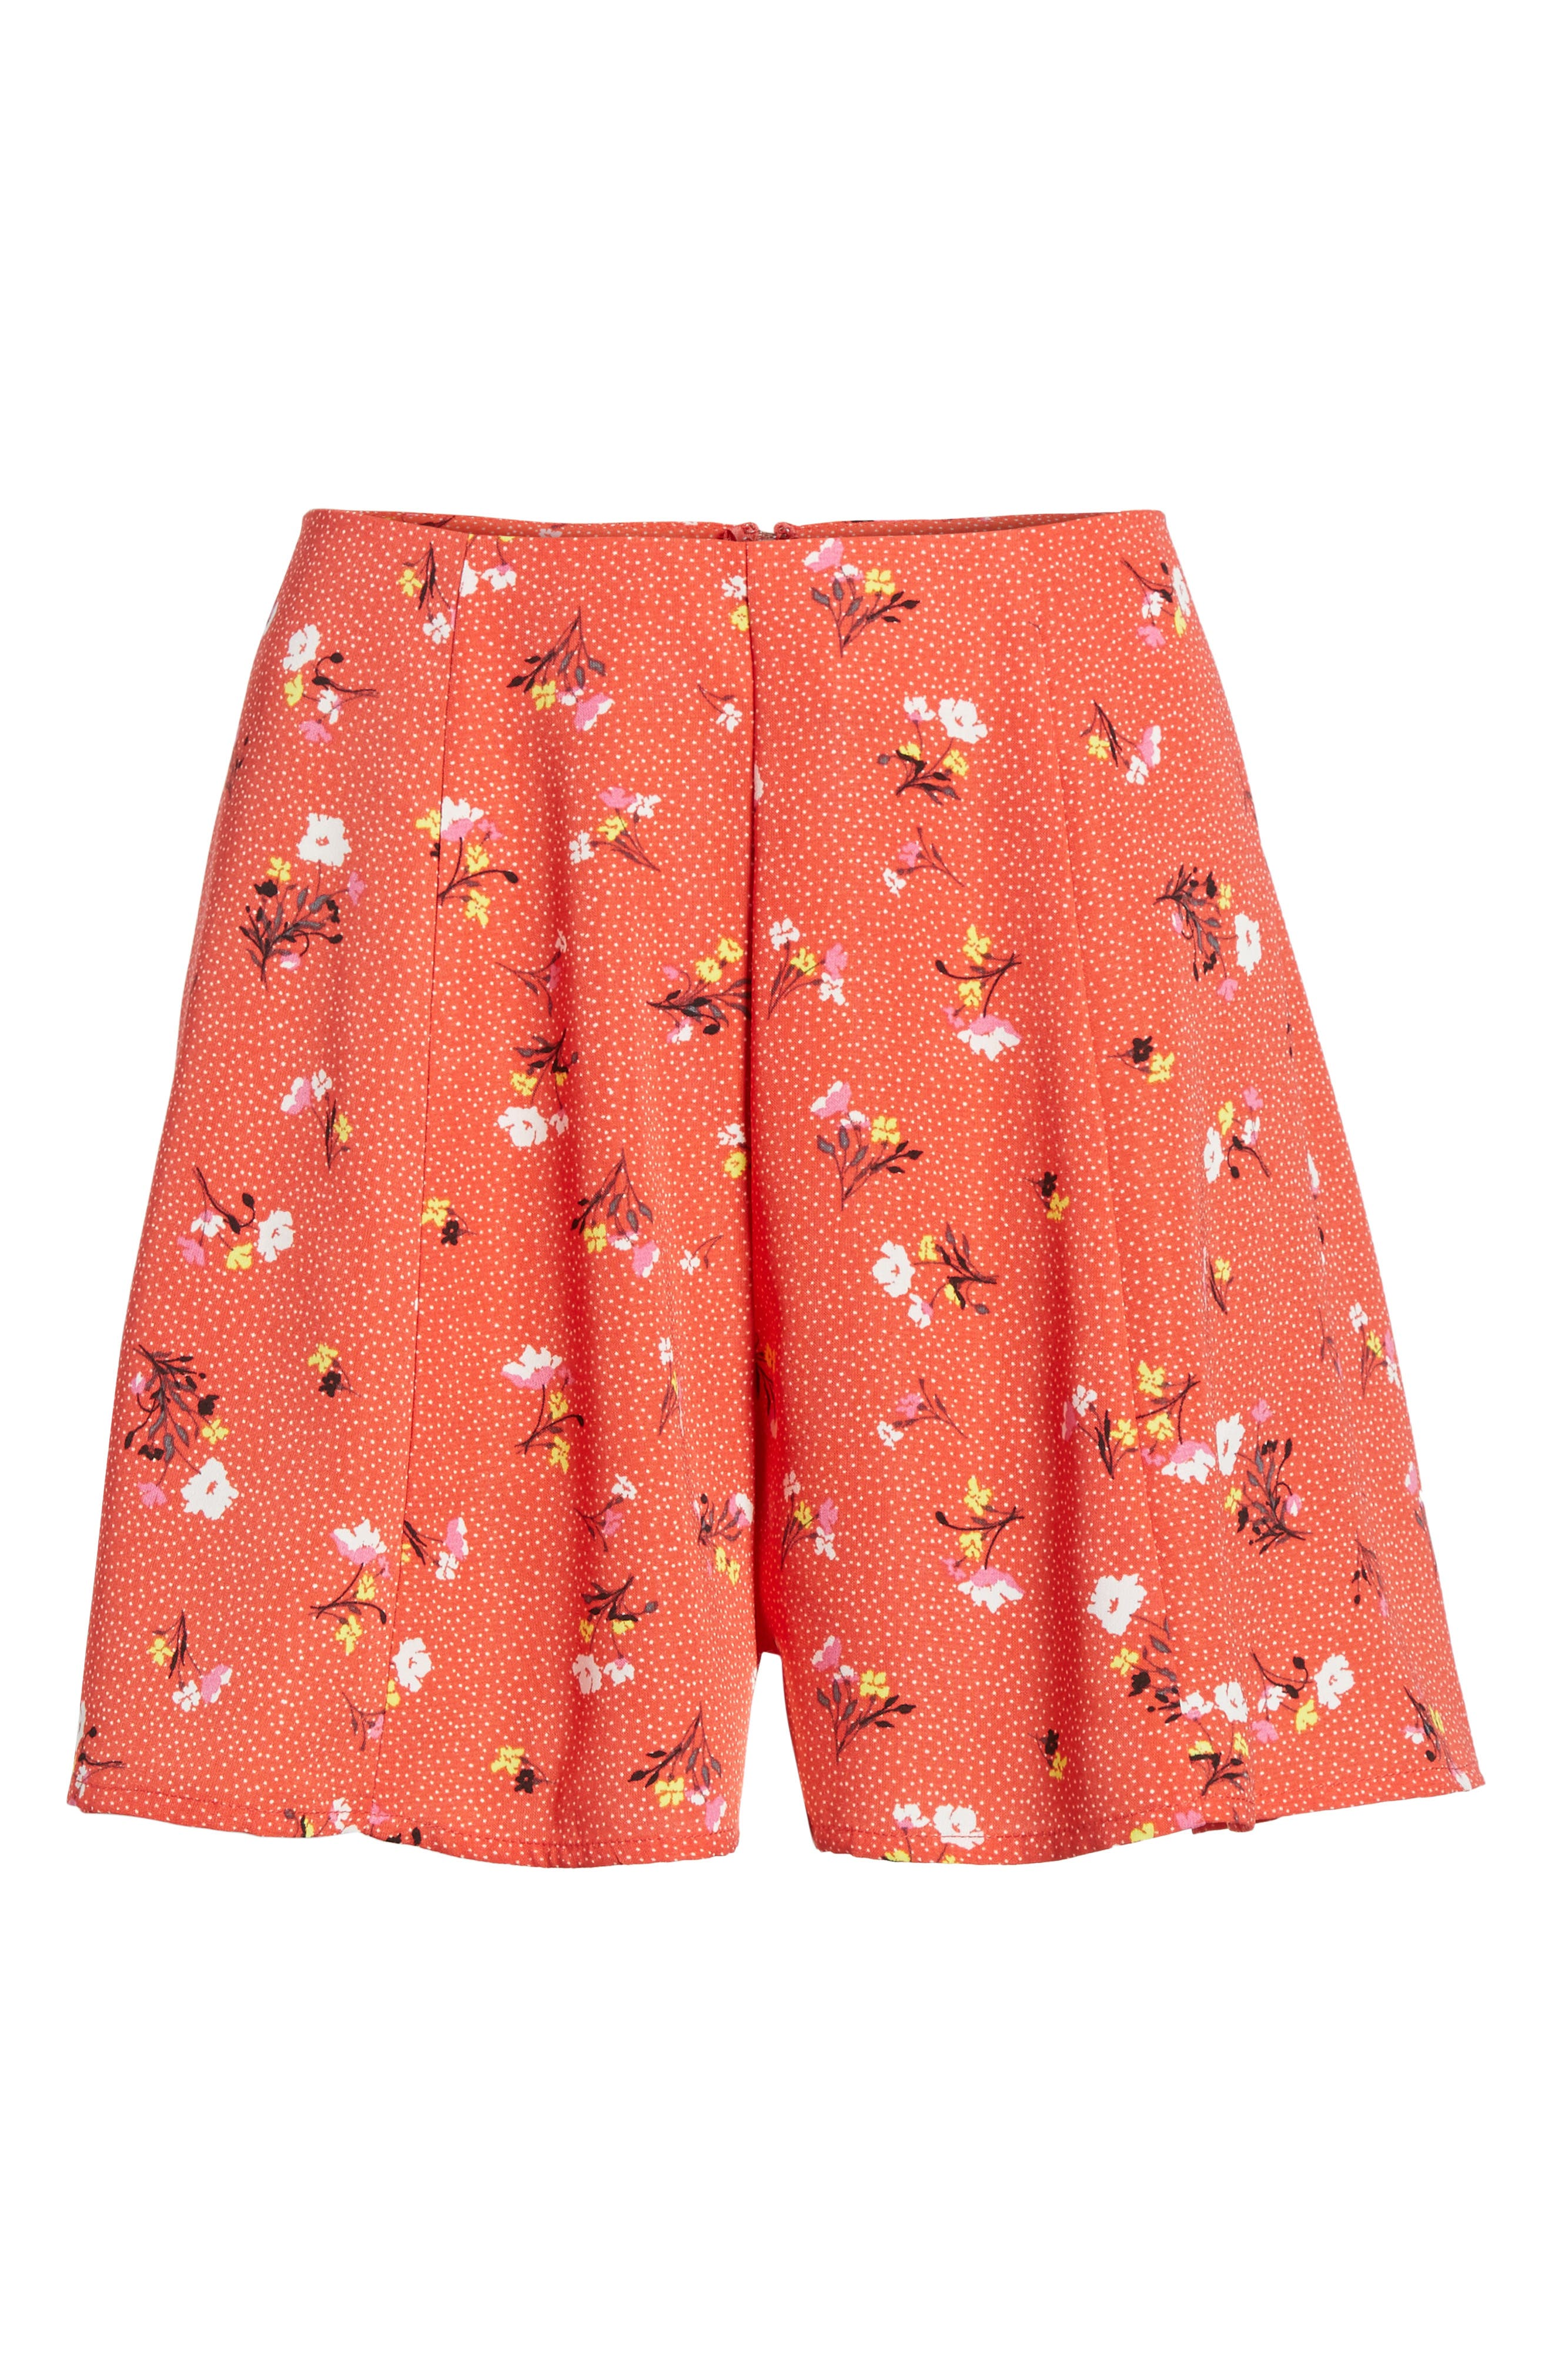 Print High Waist Shorts,                             Alternate thumbnail 7, color,                             Red Dot Floral